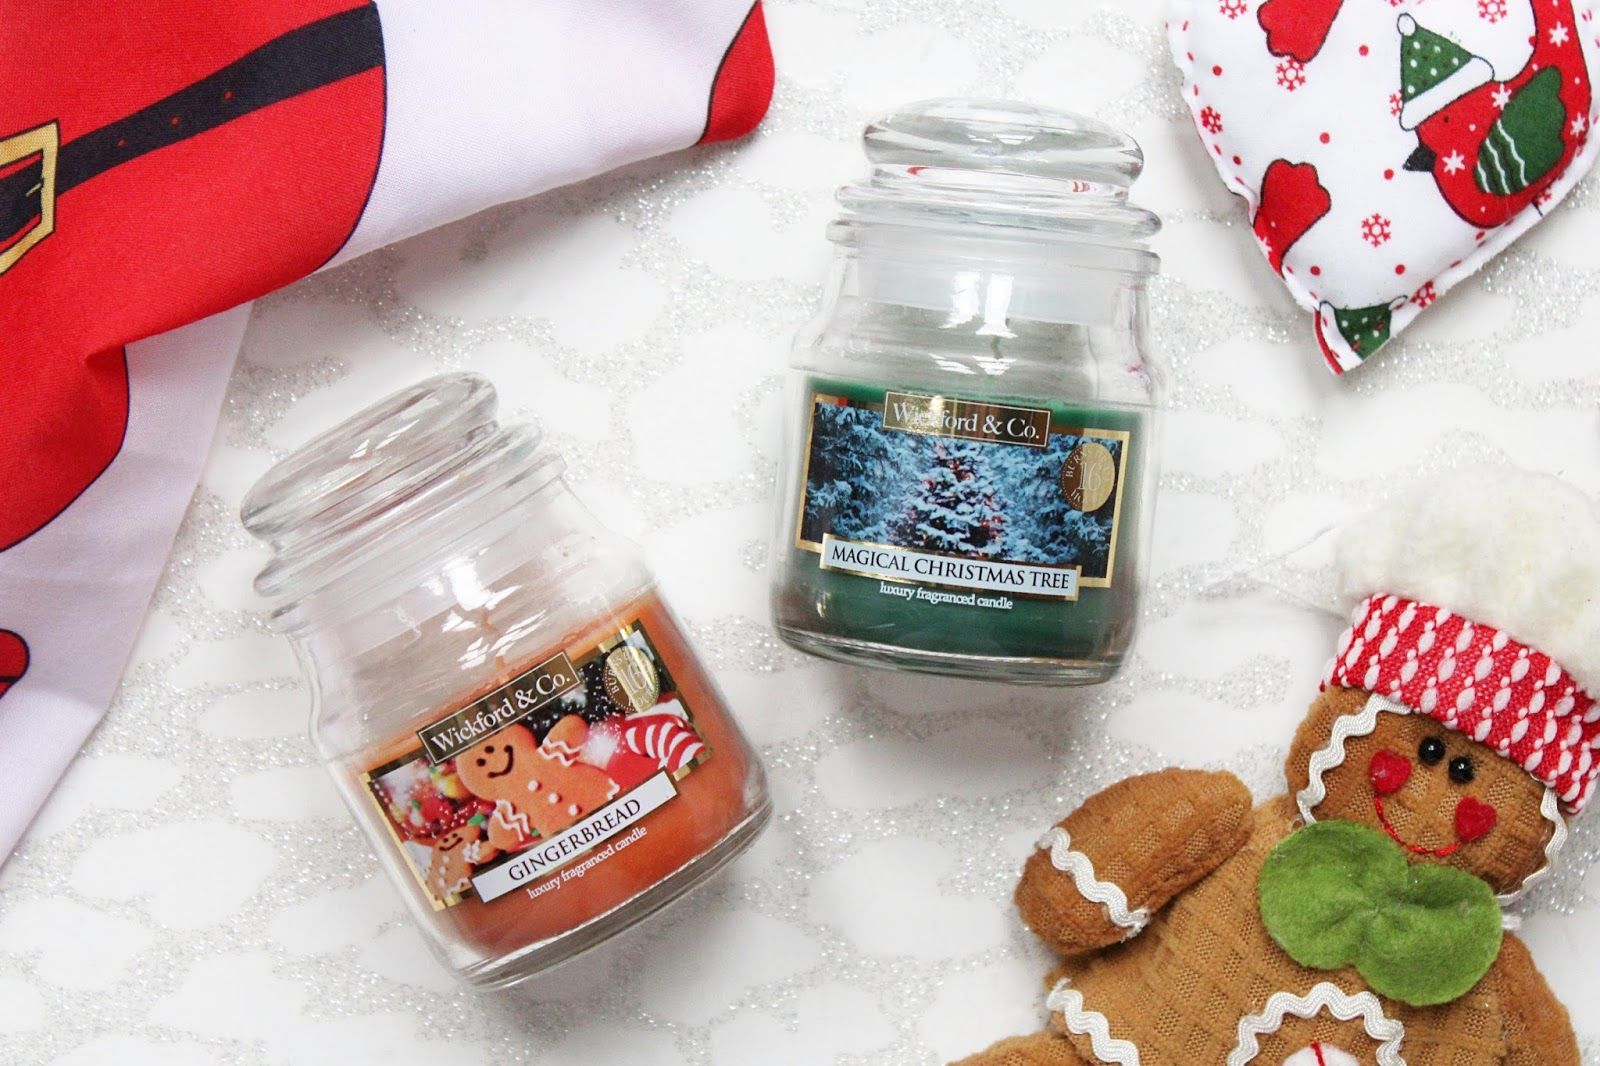 59p Christmas Candles Review